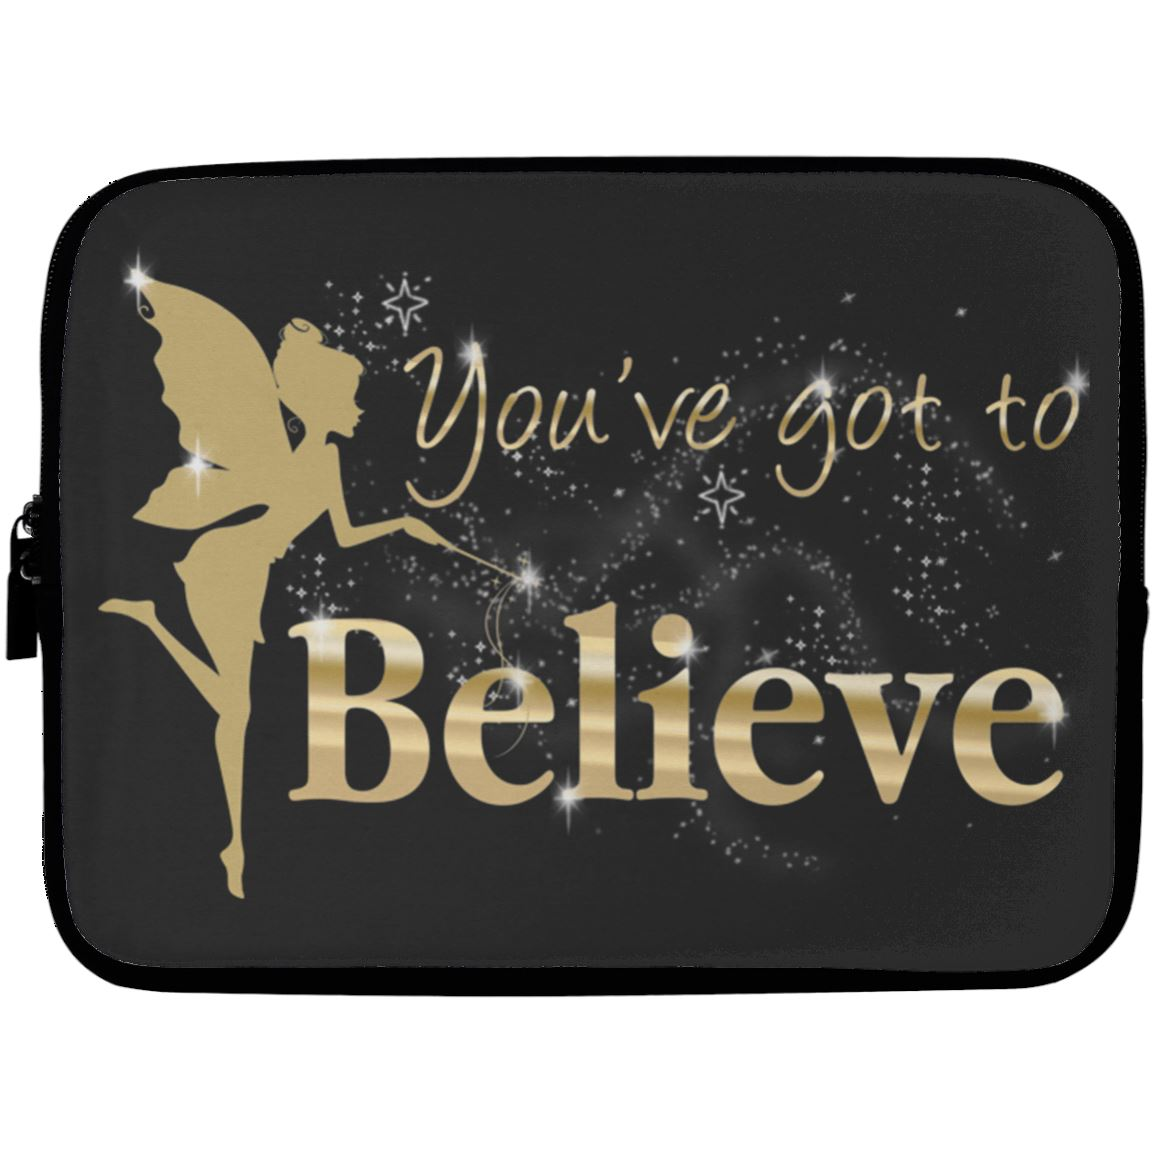 You've Got To Believe Fairy Laptop Sleeve Apparel Laptop Sleeve - 10 inch Black One Size